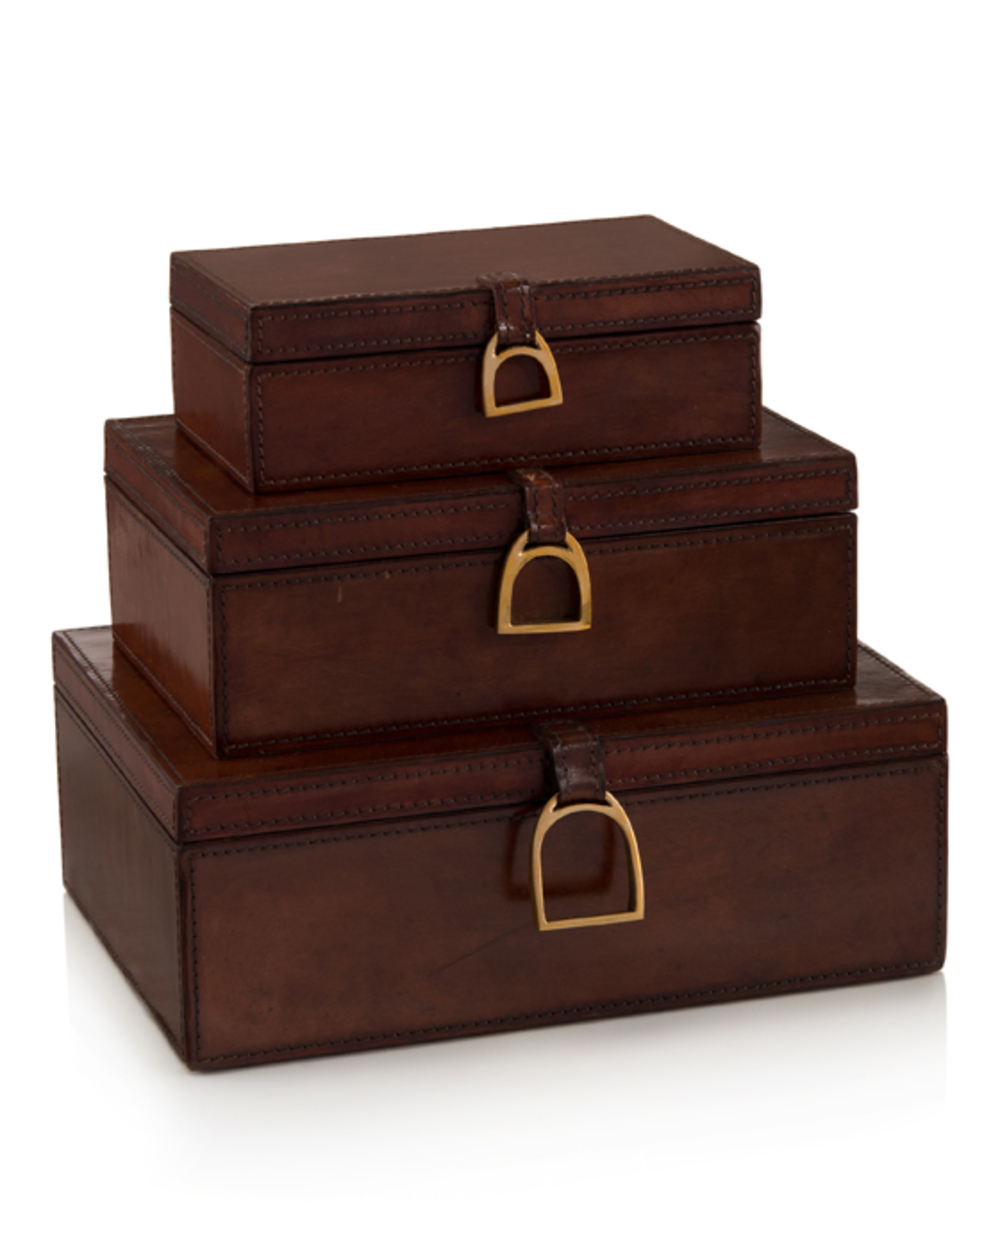 John Richard Collection - Lacquered Hazel Leather Boxes, Set/3